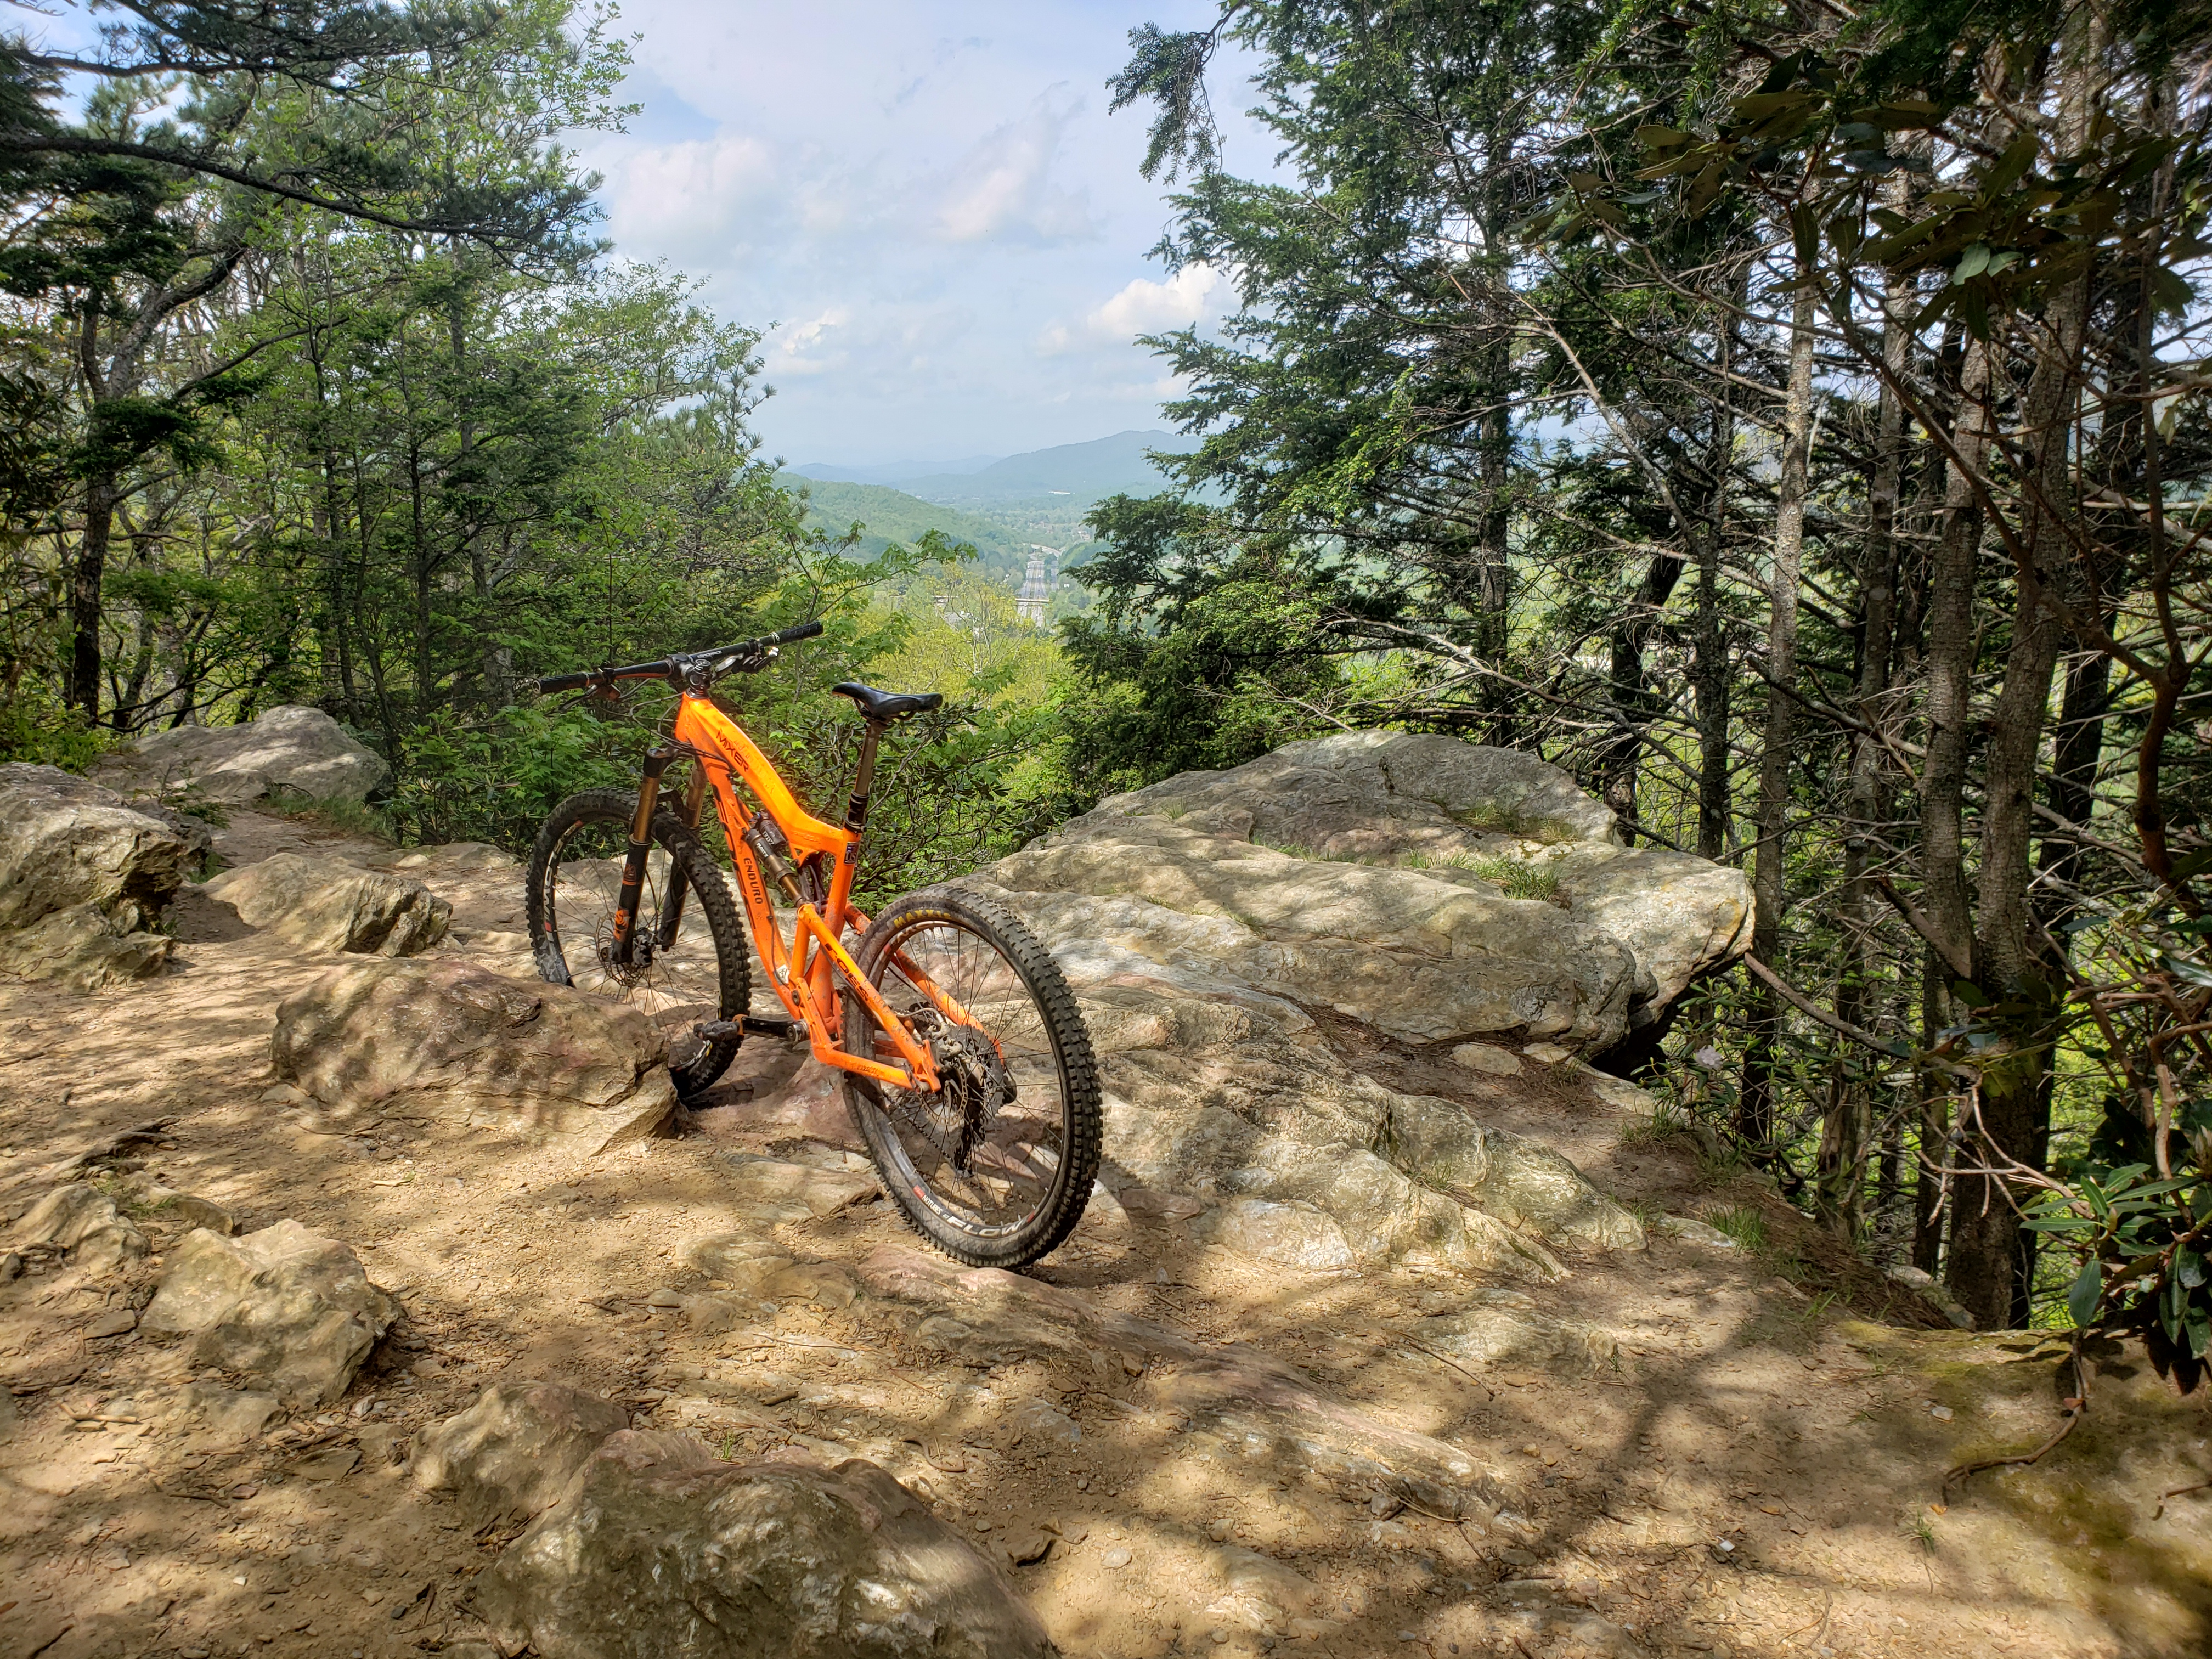 Road Trip: 11 Days Riding Some of the Best Mountain Bike Trails in the Southeast - Singletracks Mountain Bike News